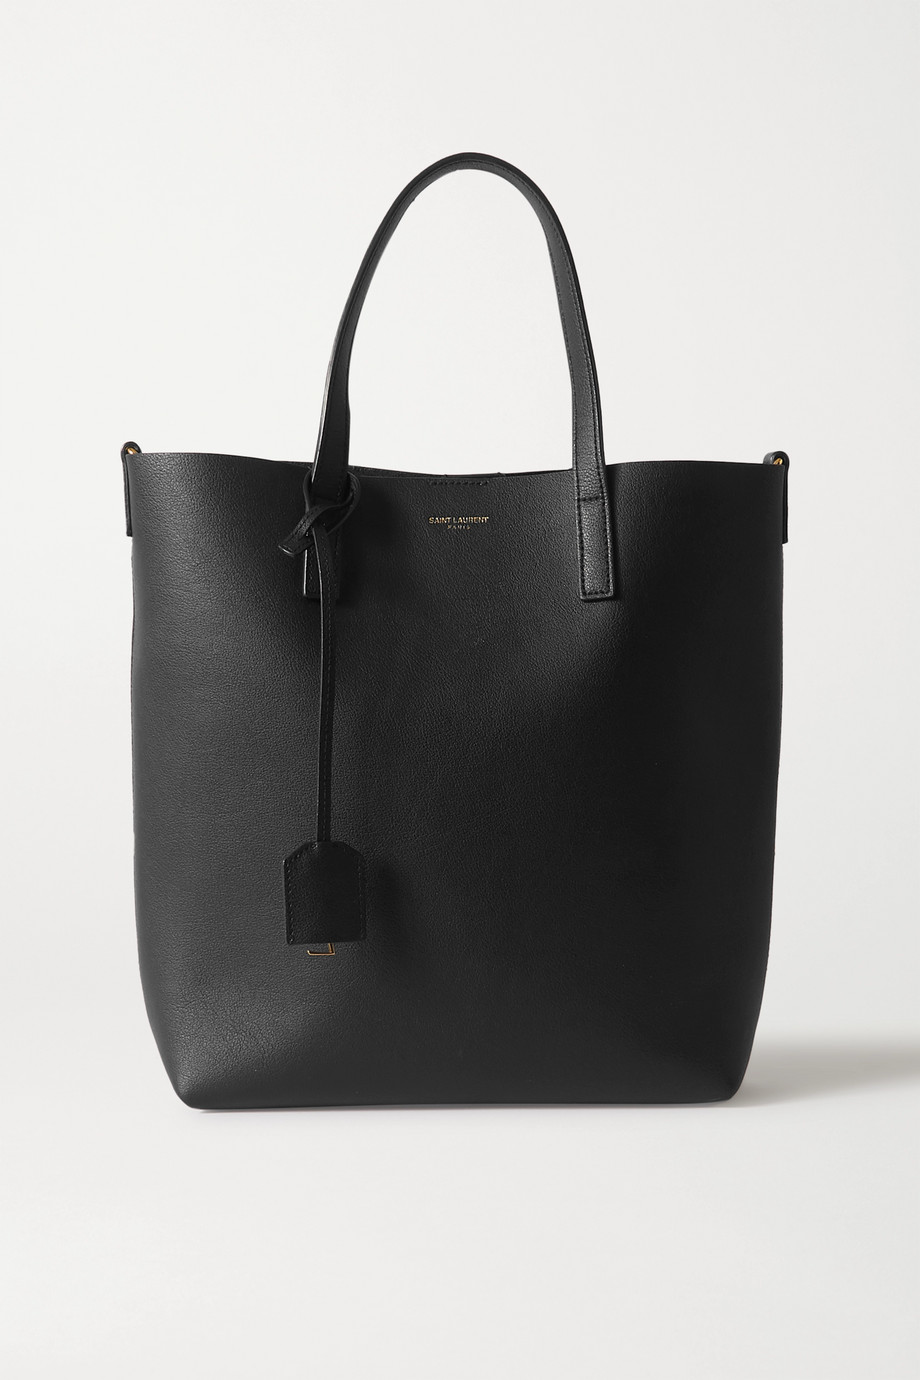 SAINT LAURENT Mini leather tote